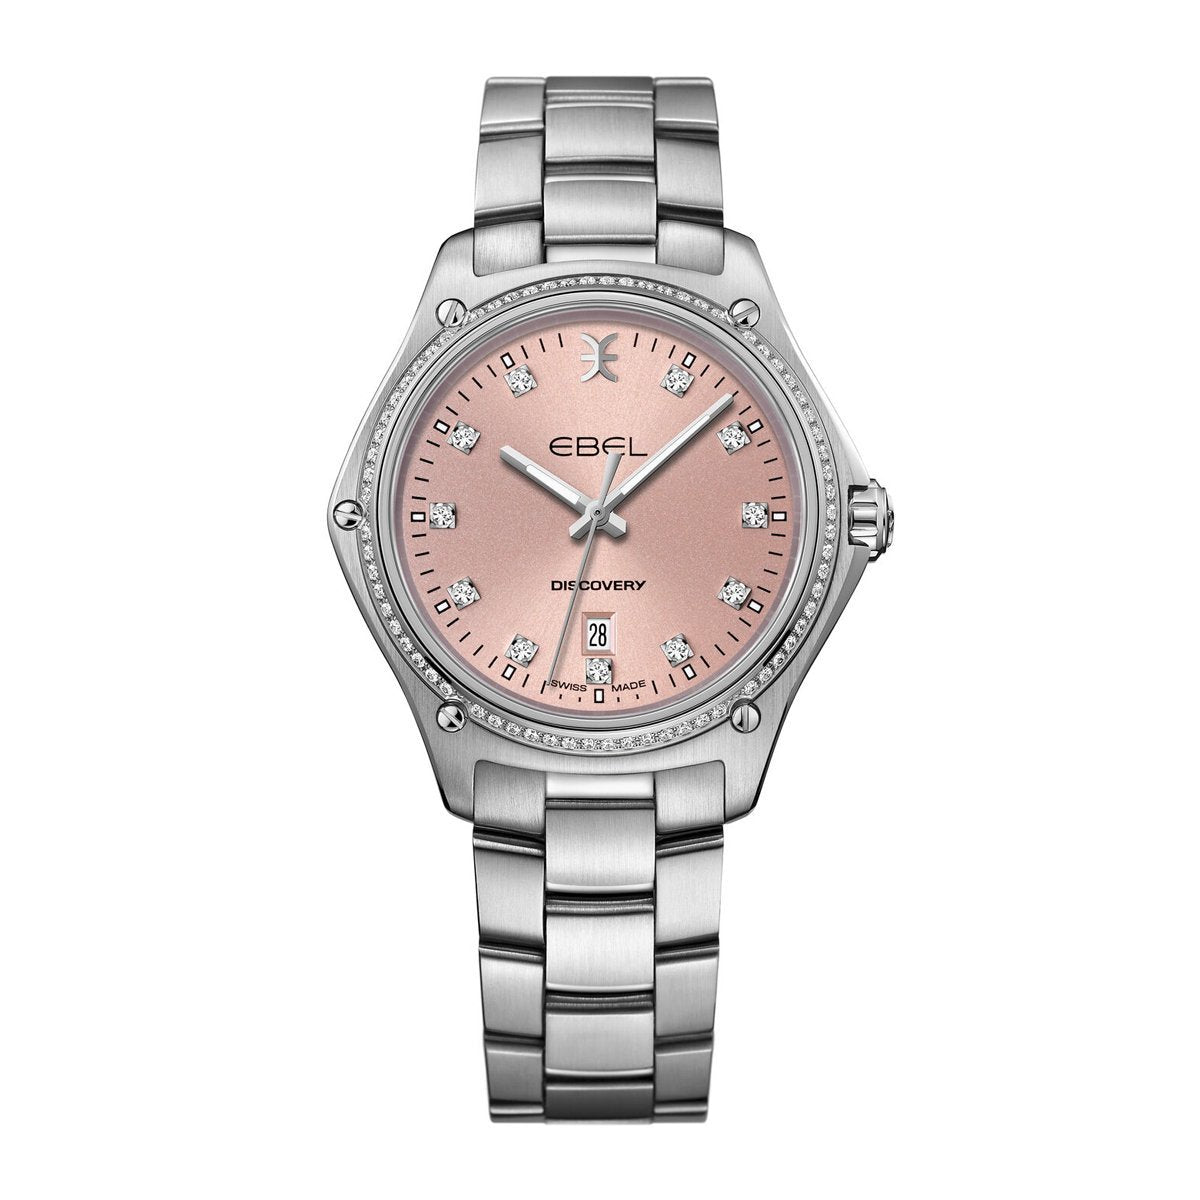 Ebel Discovery Steel Pink Diamond - Watches & Crystals